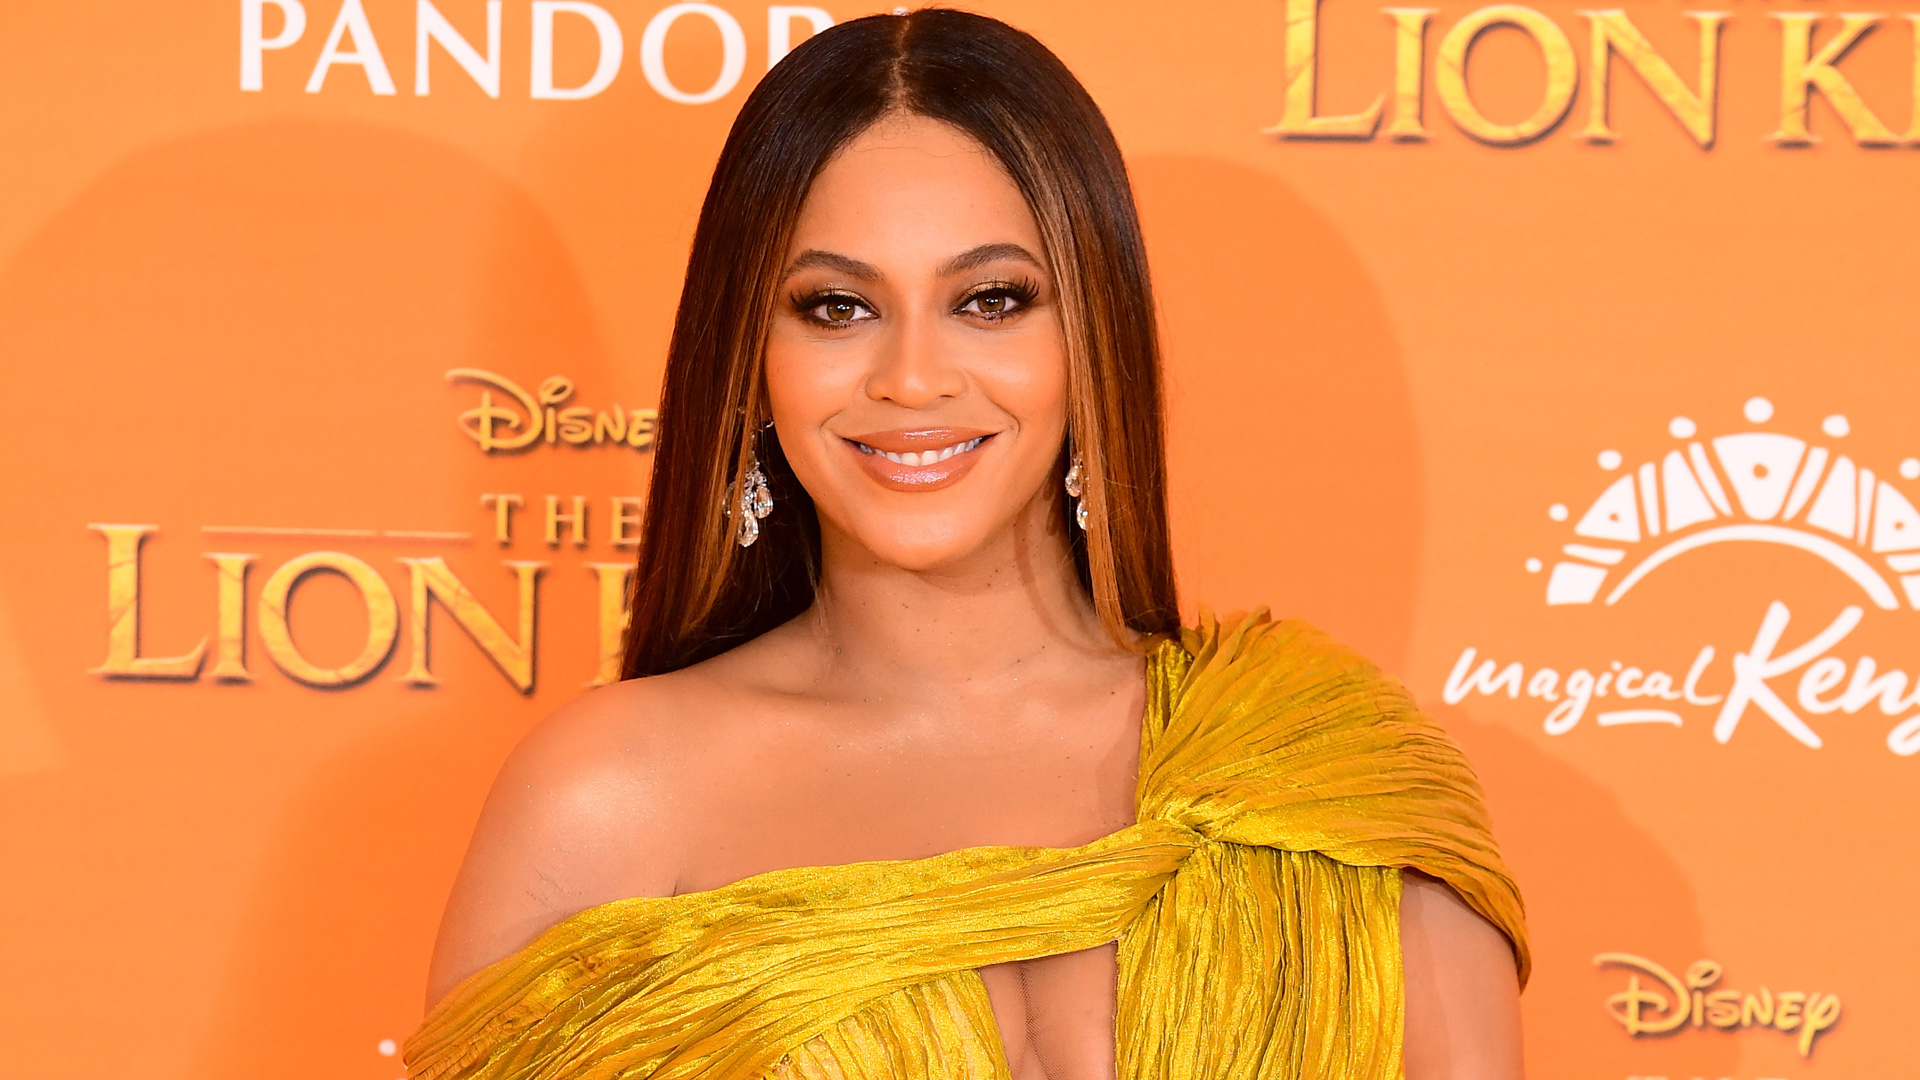 beyonce-premier-disneys-the-lion-king-julio-2019_0